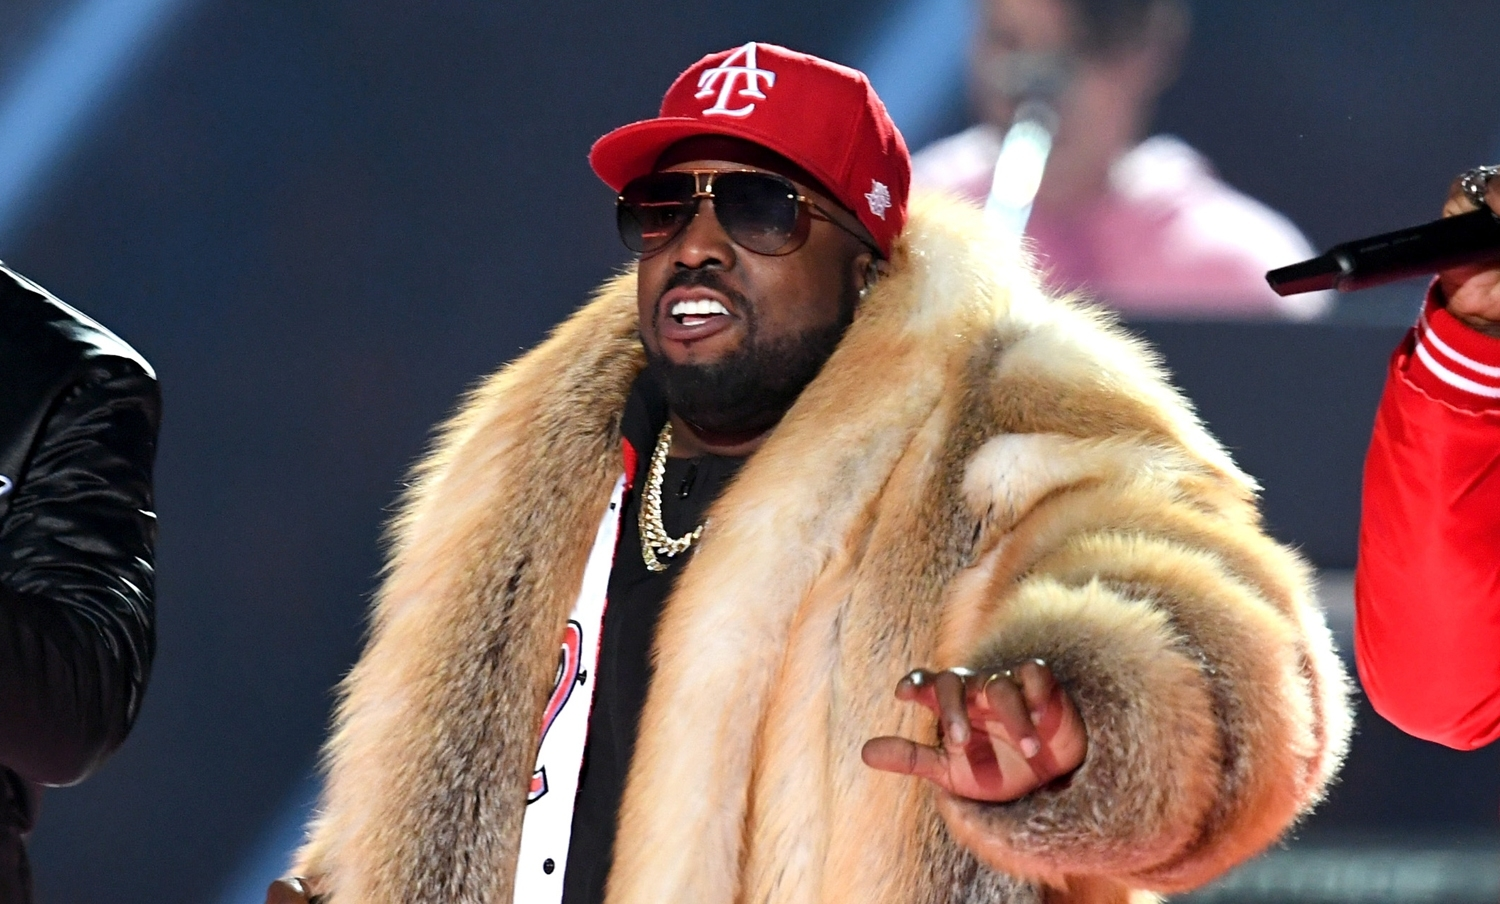 Big Boi Performs 'the Way You Move' At Super Bowl 2019 intended for Big Boi Super Bowl 2019